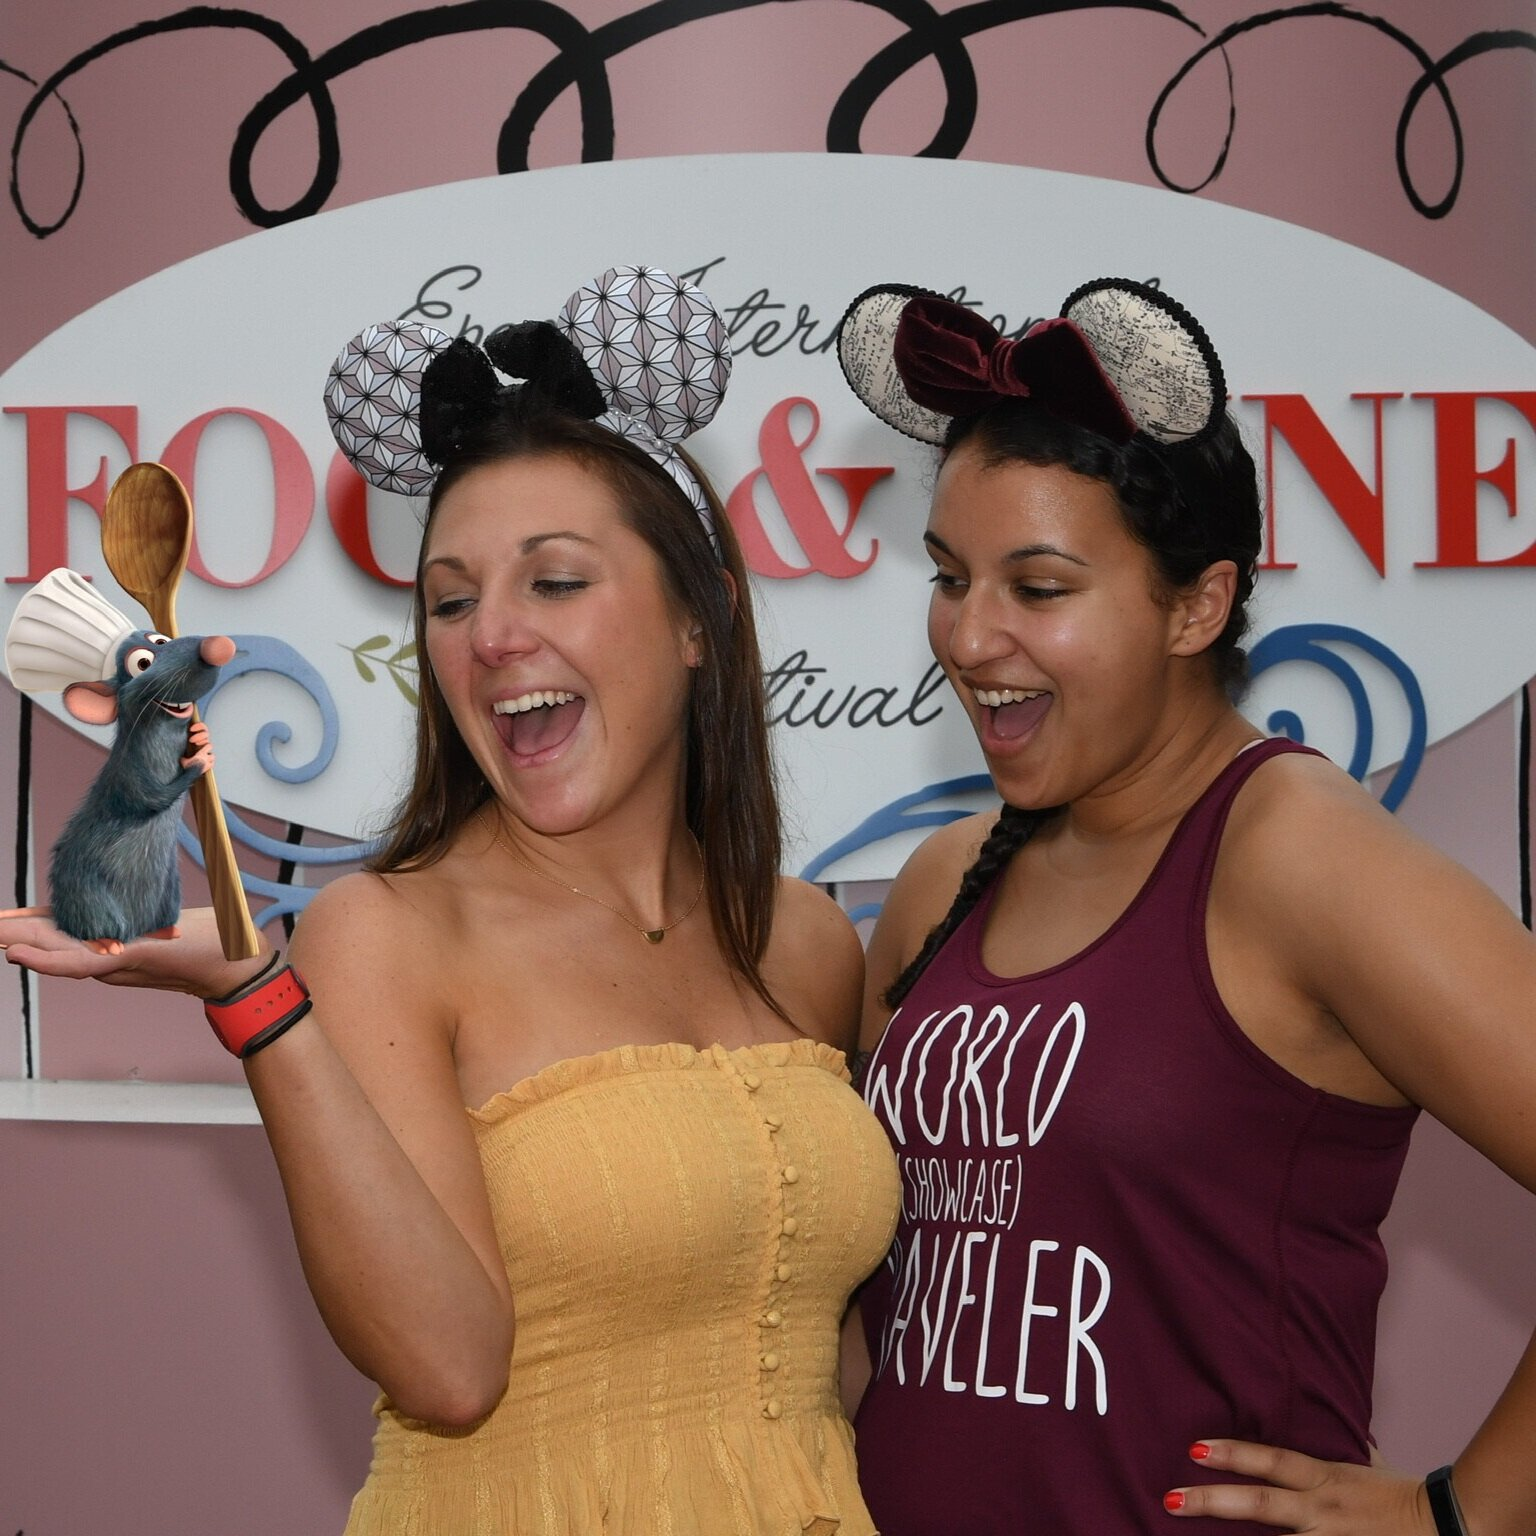 Remy joins Lauren and I for some fun at Food & Wine! (Disney's PhotoPass)